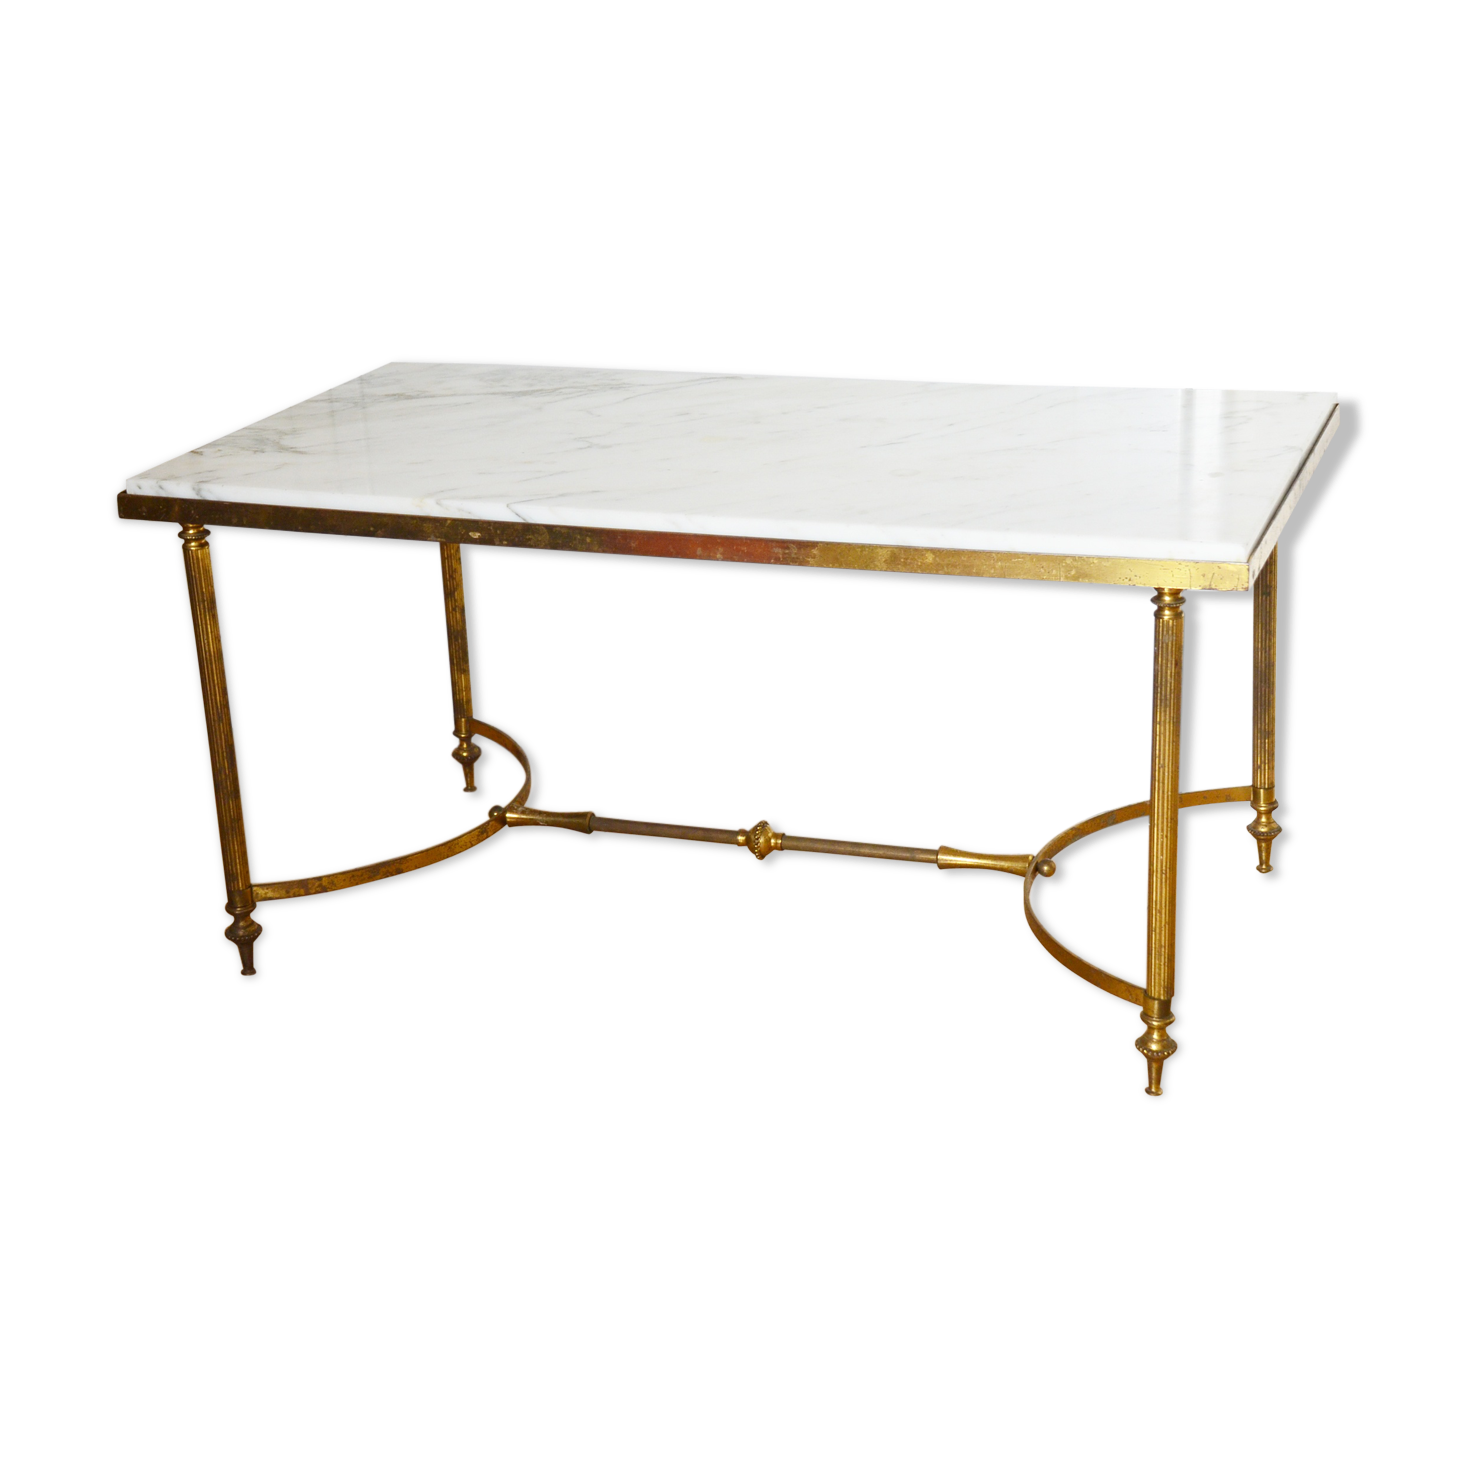 table basse en plexiglas tablette plexiglass ancien table. Black Bedroom Furniture Sets. Home Design Ideas